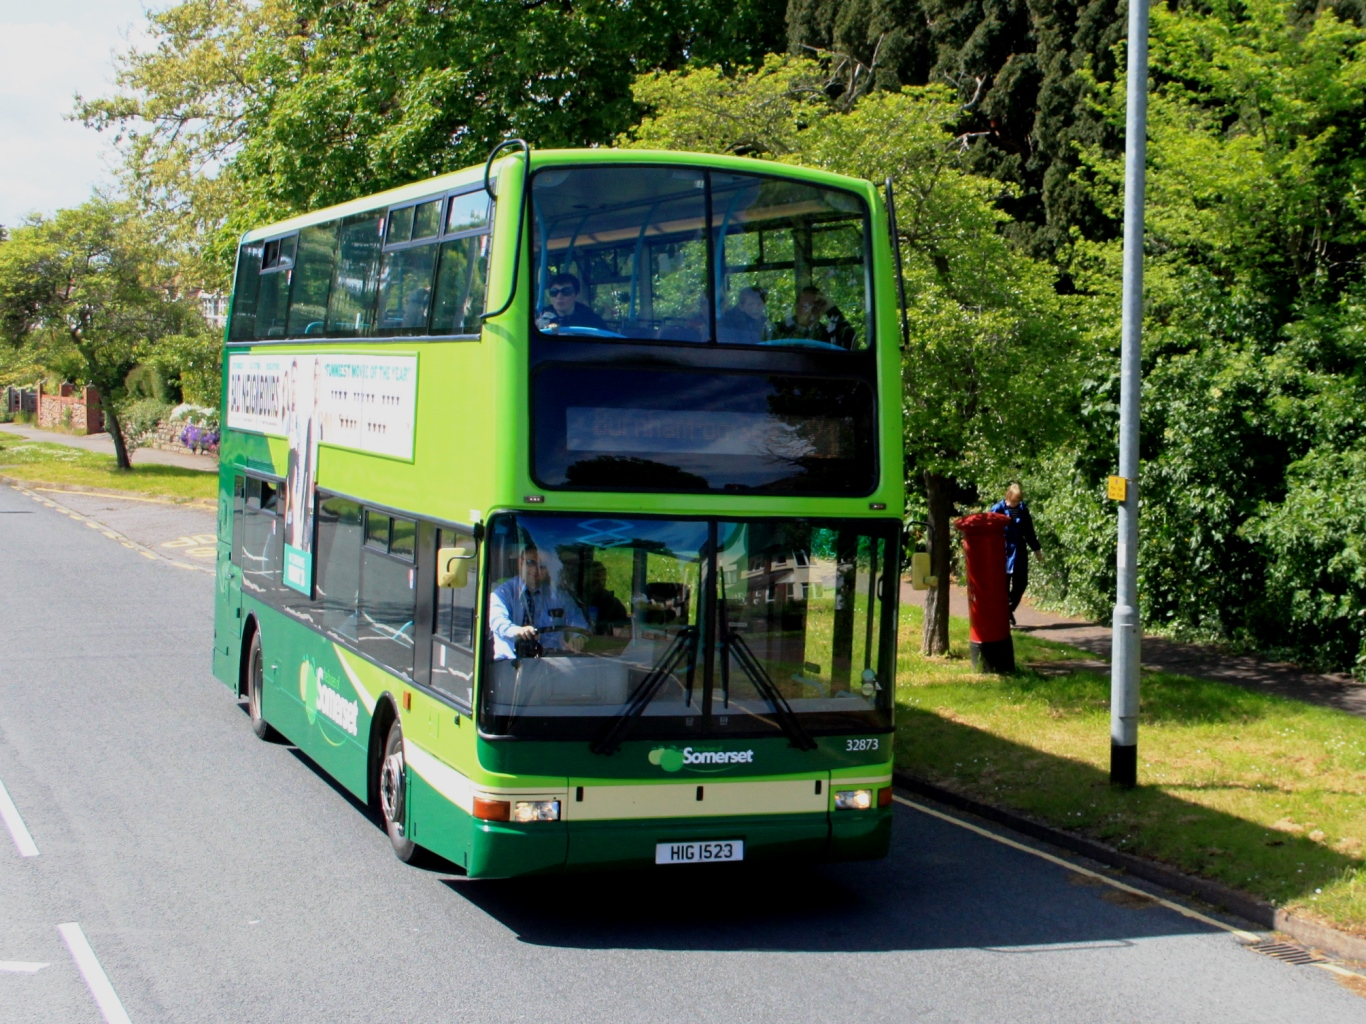 10 UK bus liveries we really, really love